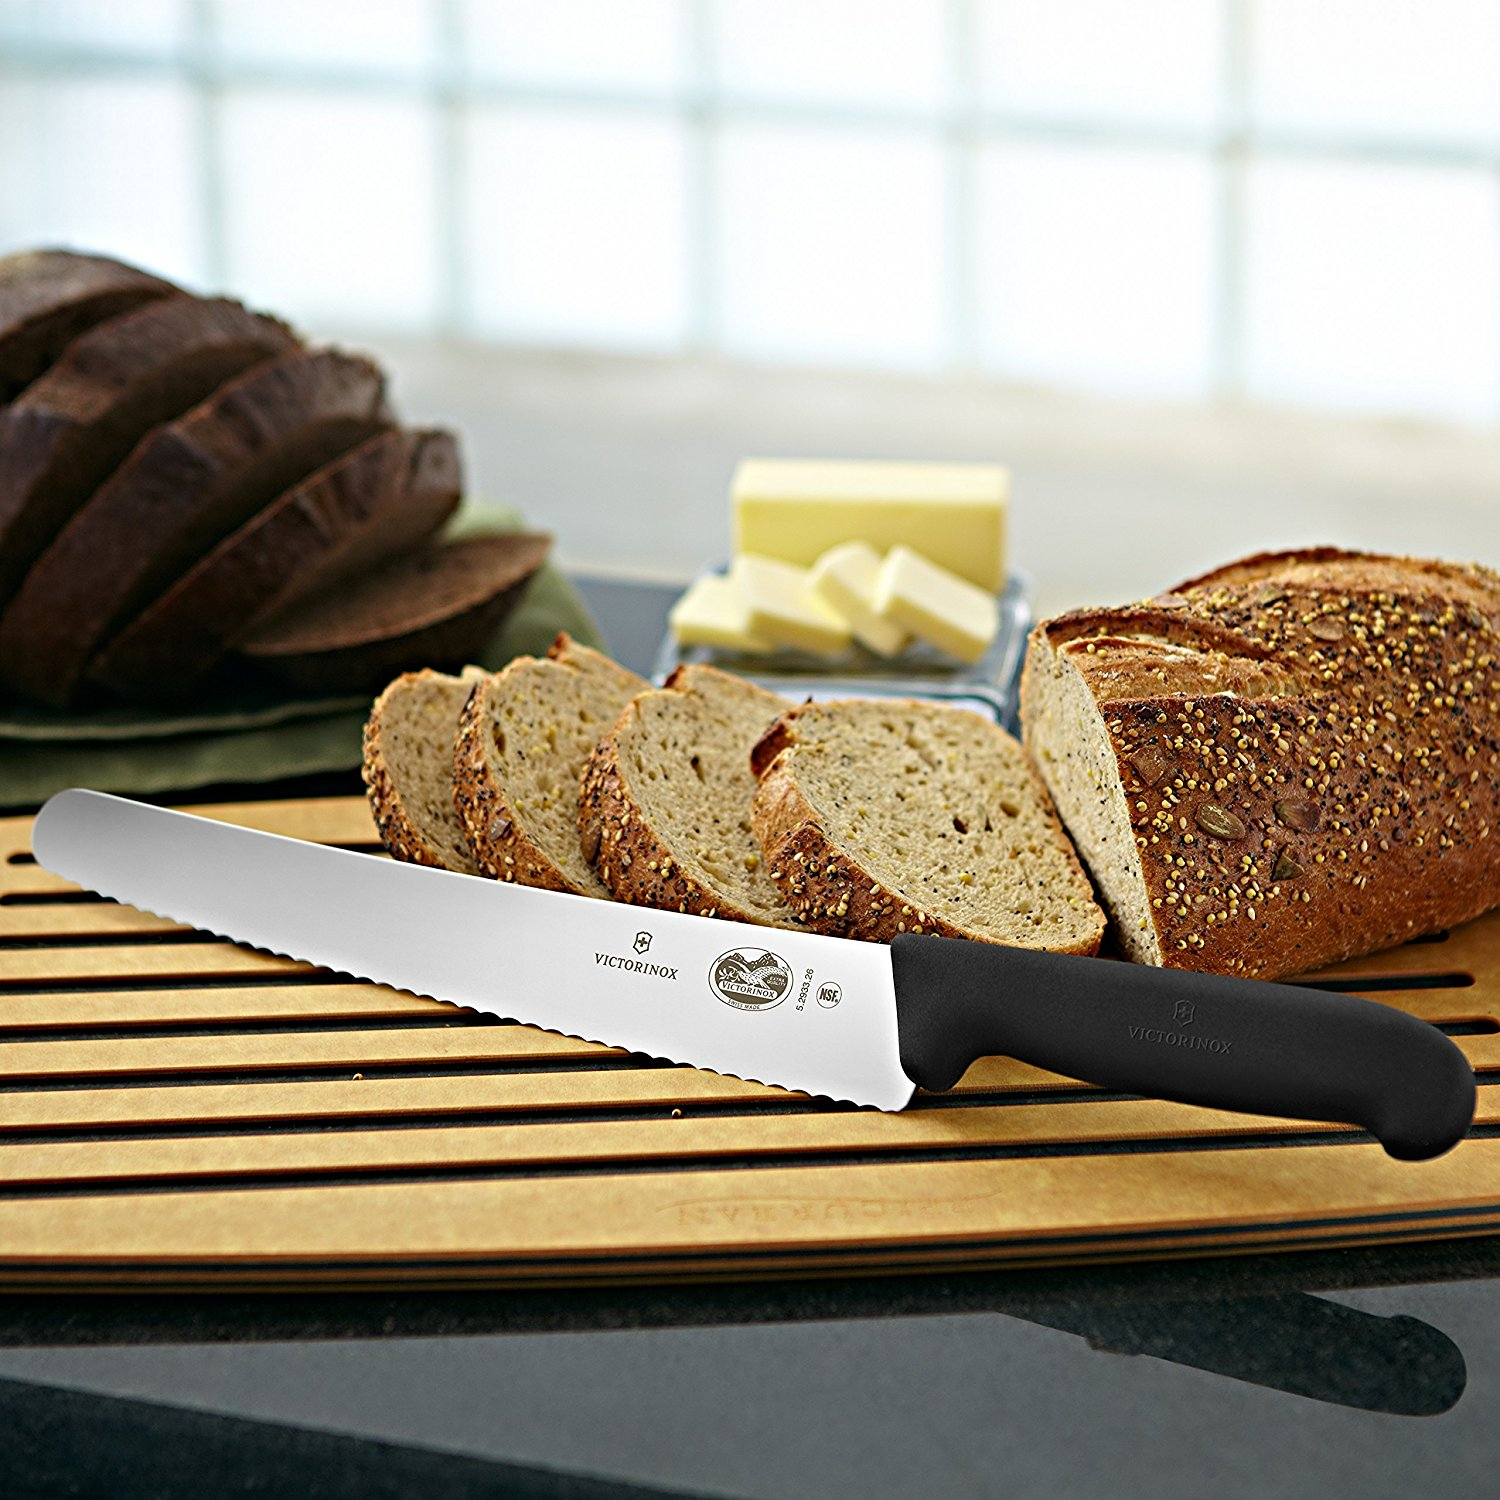 Victorinox Pro Slant Tip Serrated Bread Knife